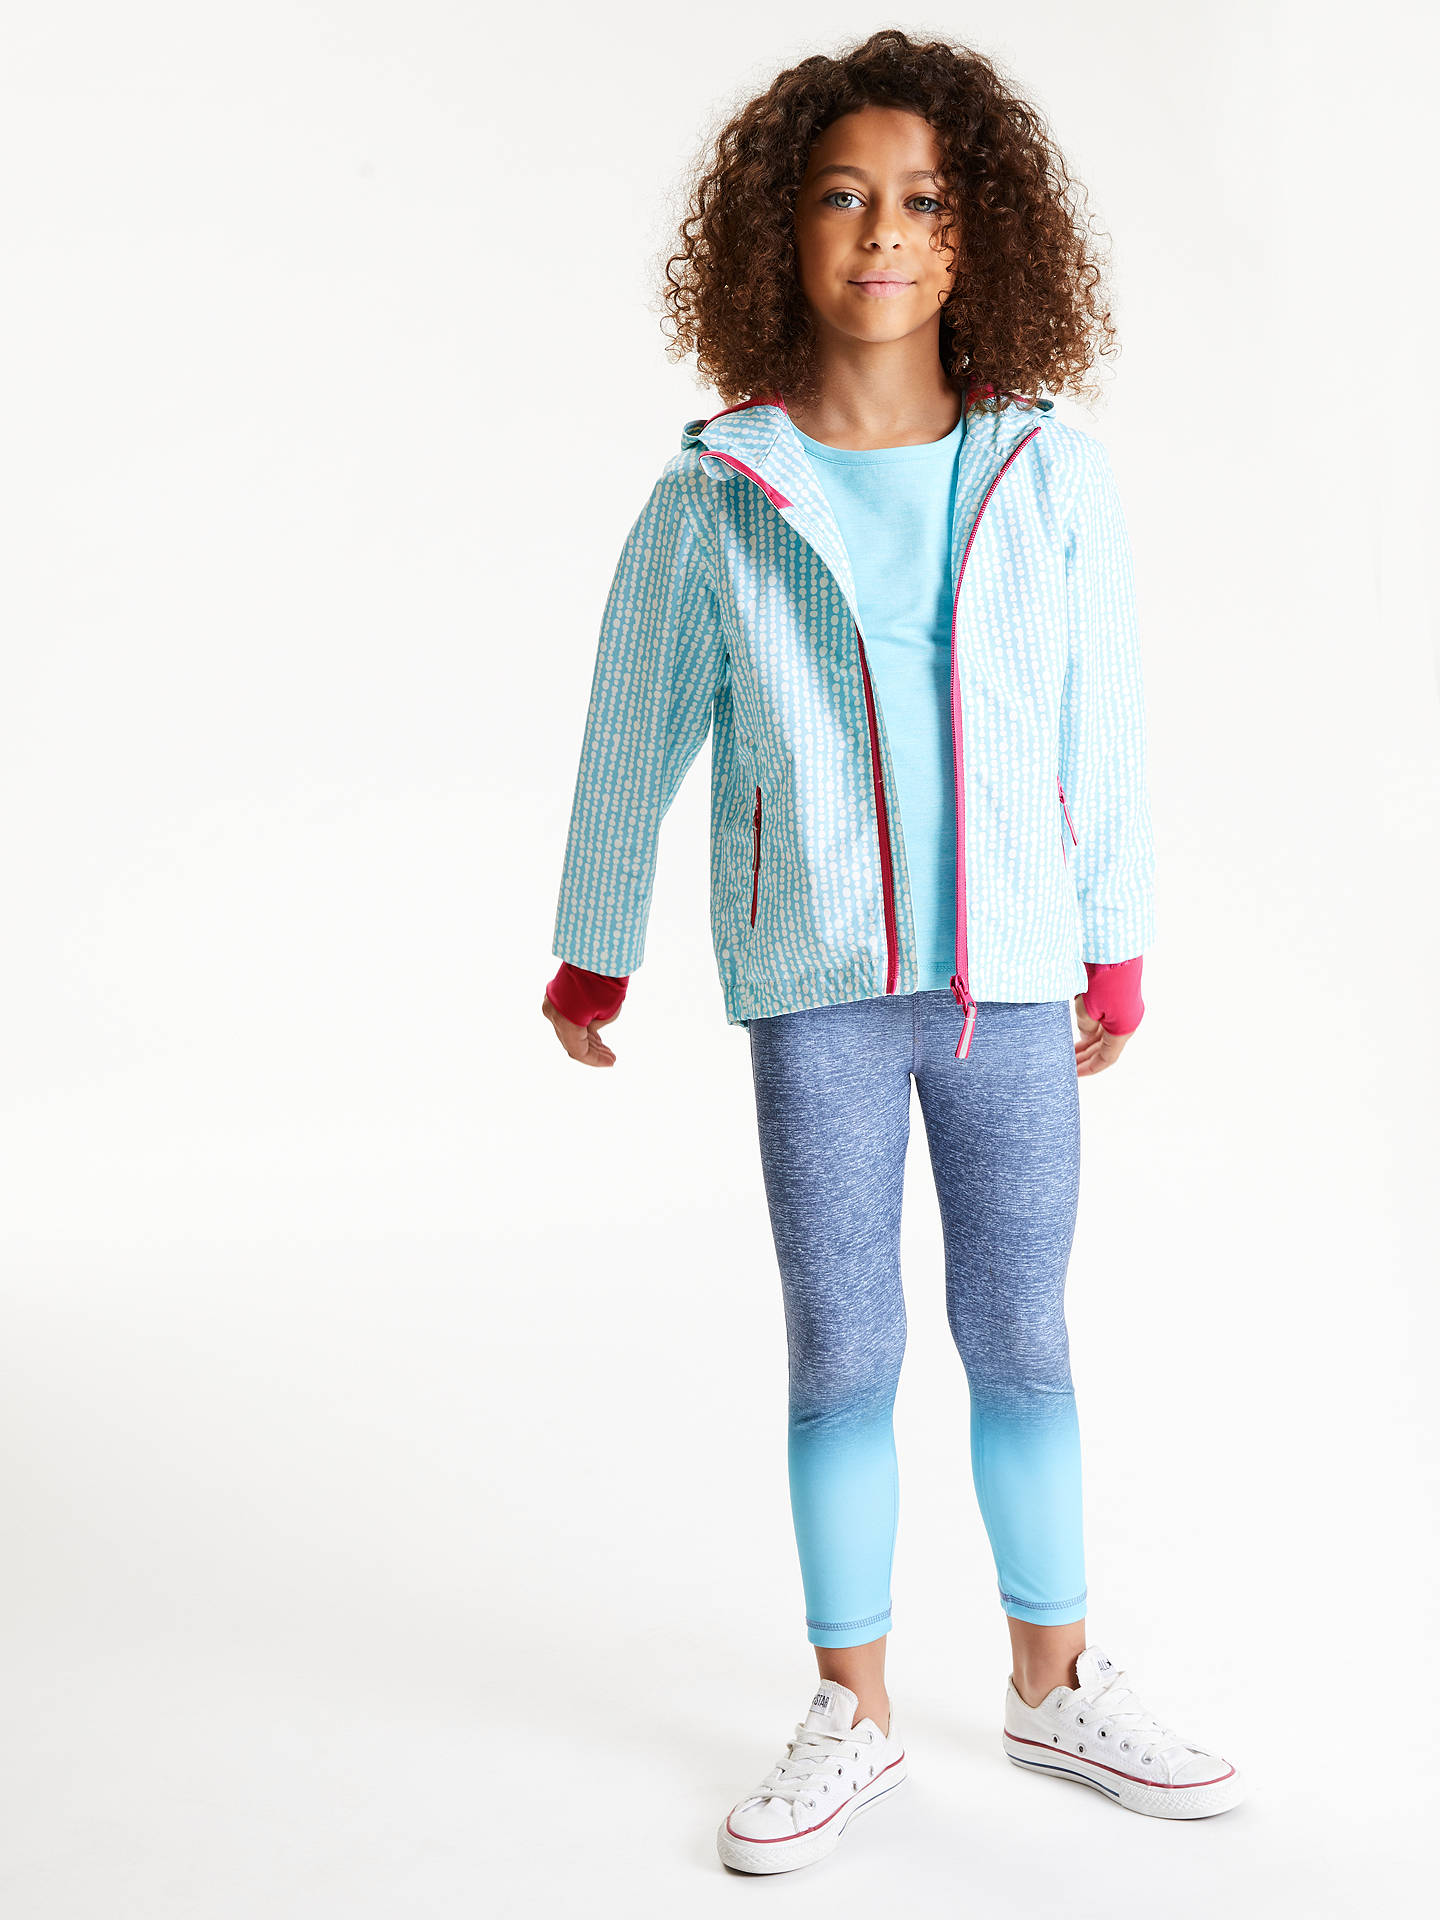 Buy John Lewis & Partners Girls' Geo Spot Jacket, Blue, 9 years Online at johnlewis.com